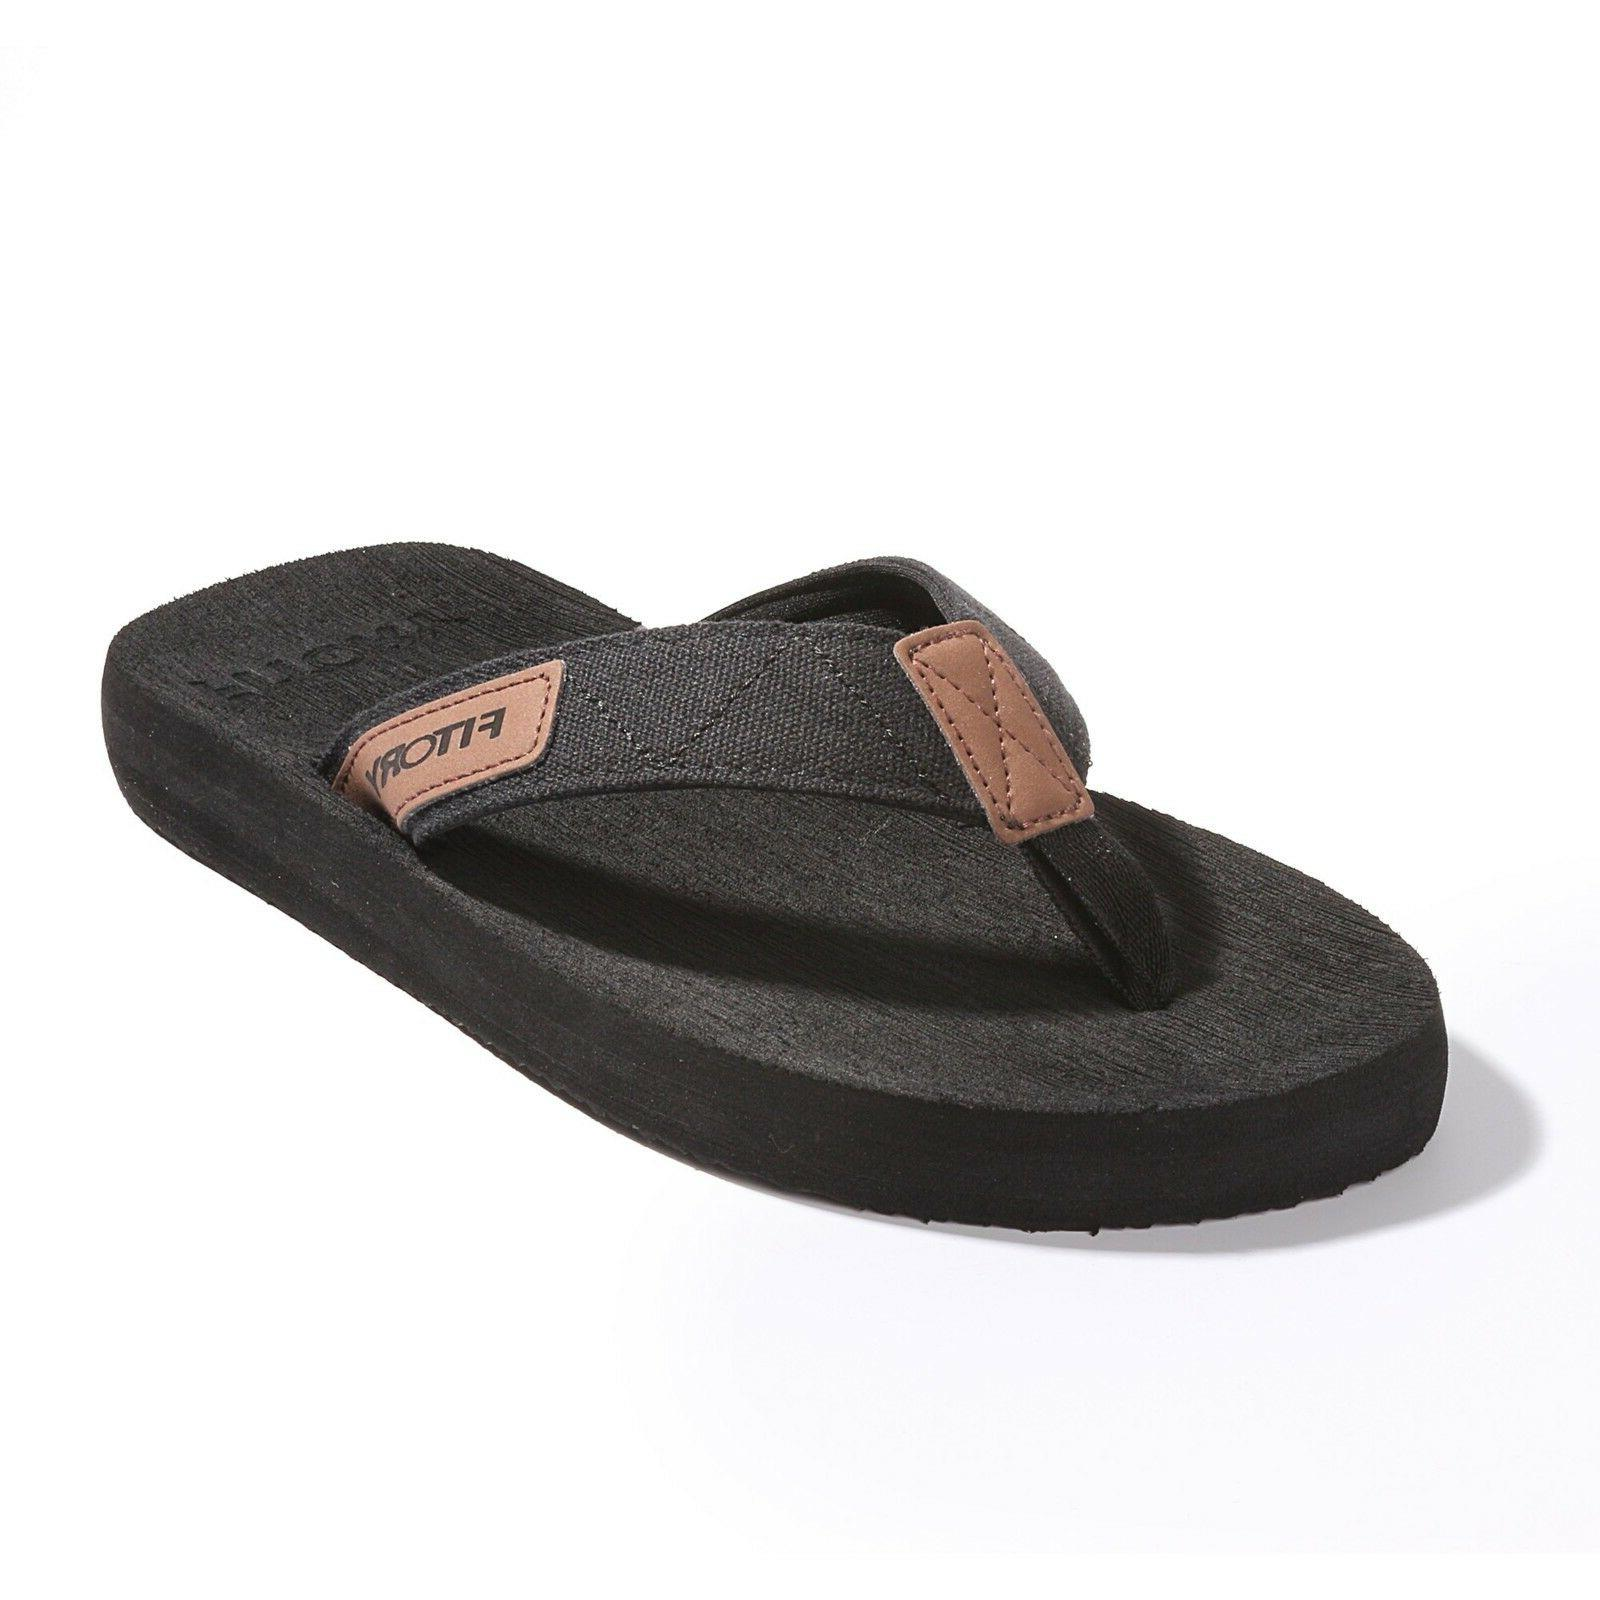 FITORY Men's Slippers Flip-Flops Arch Support Thongs Comfort